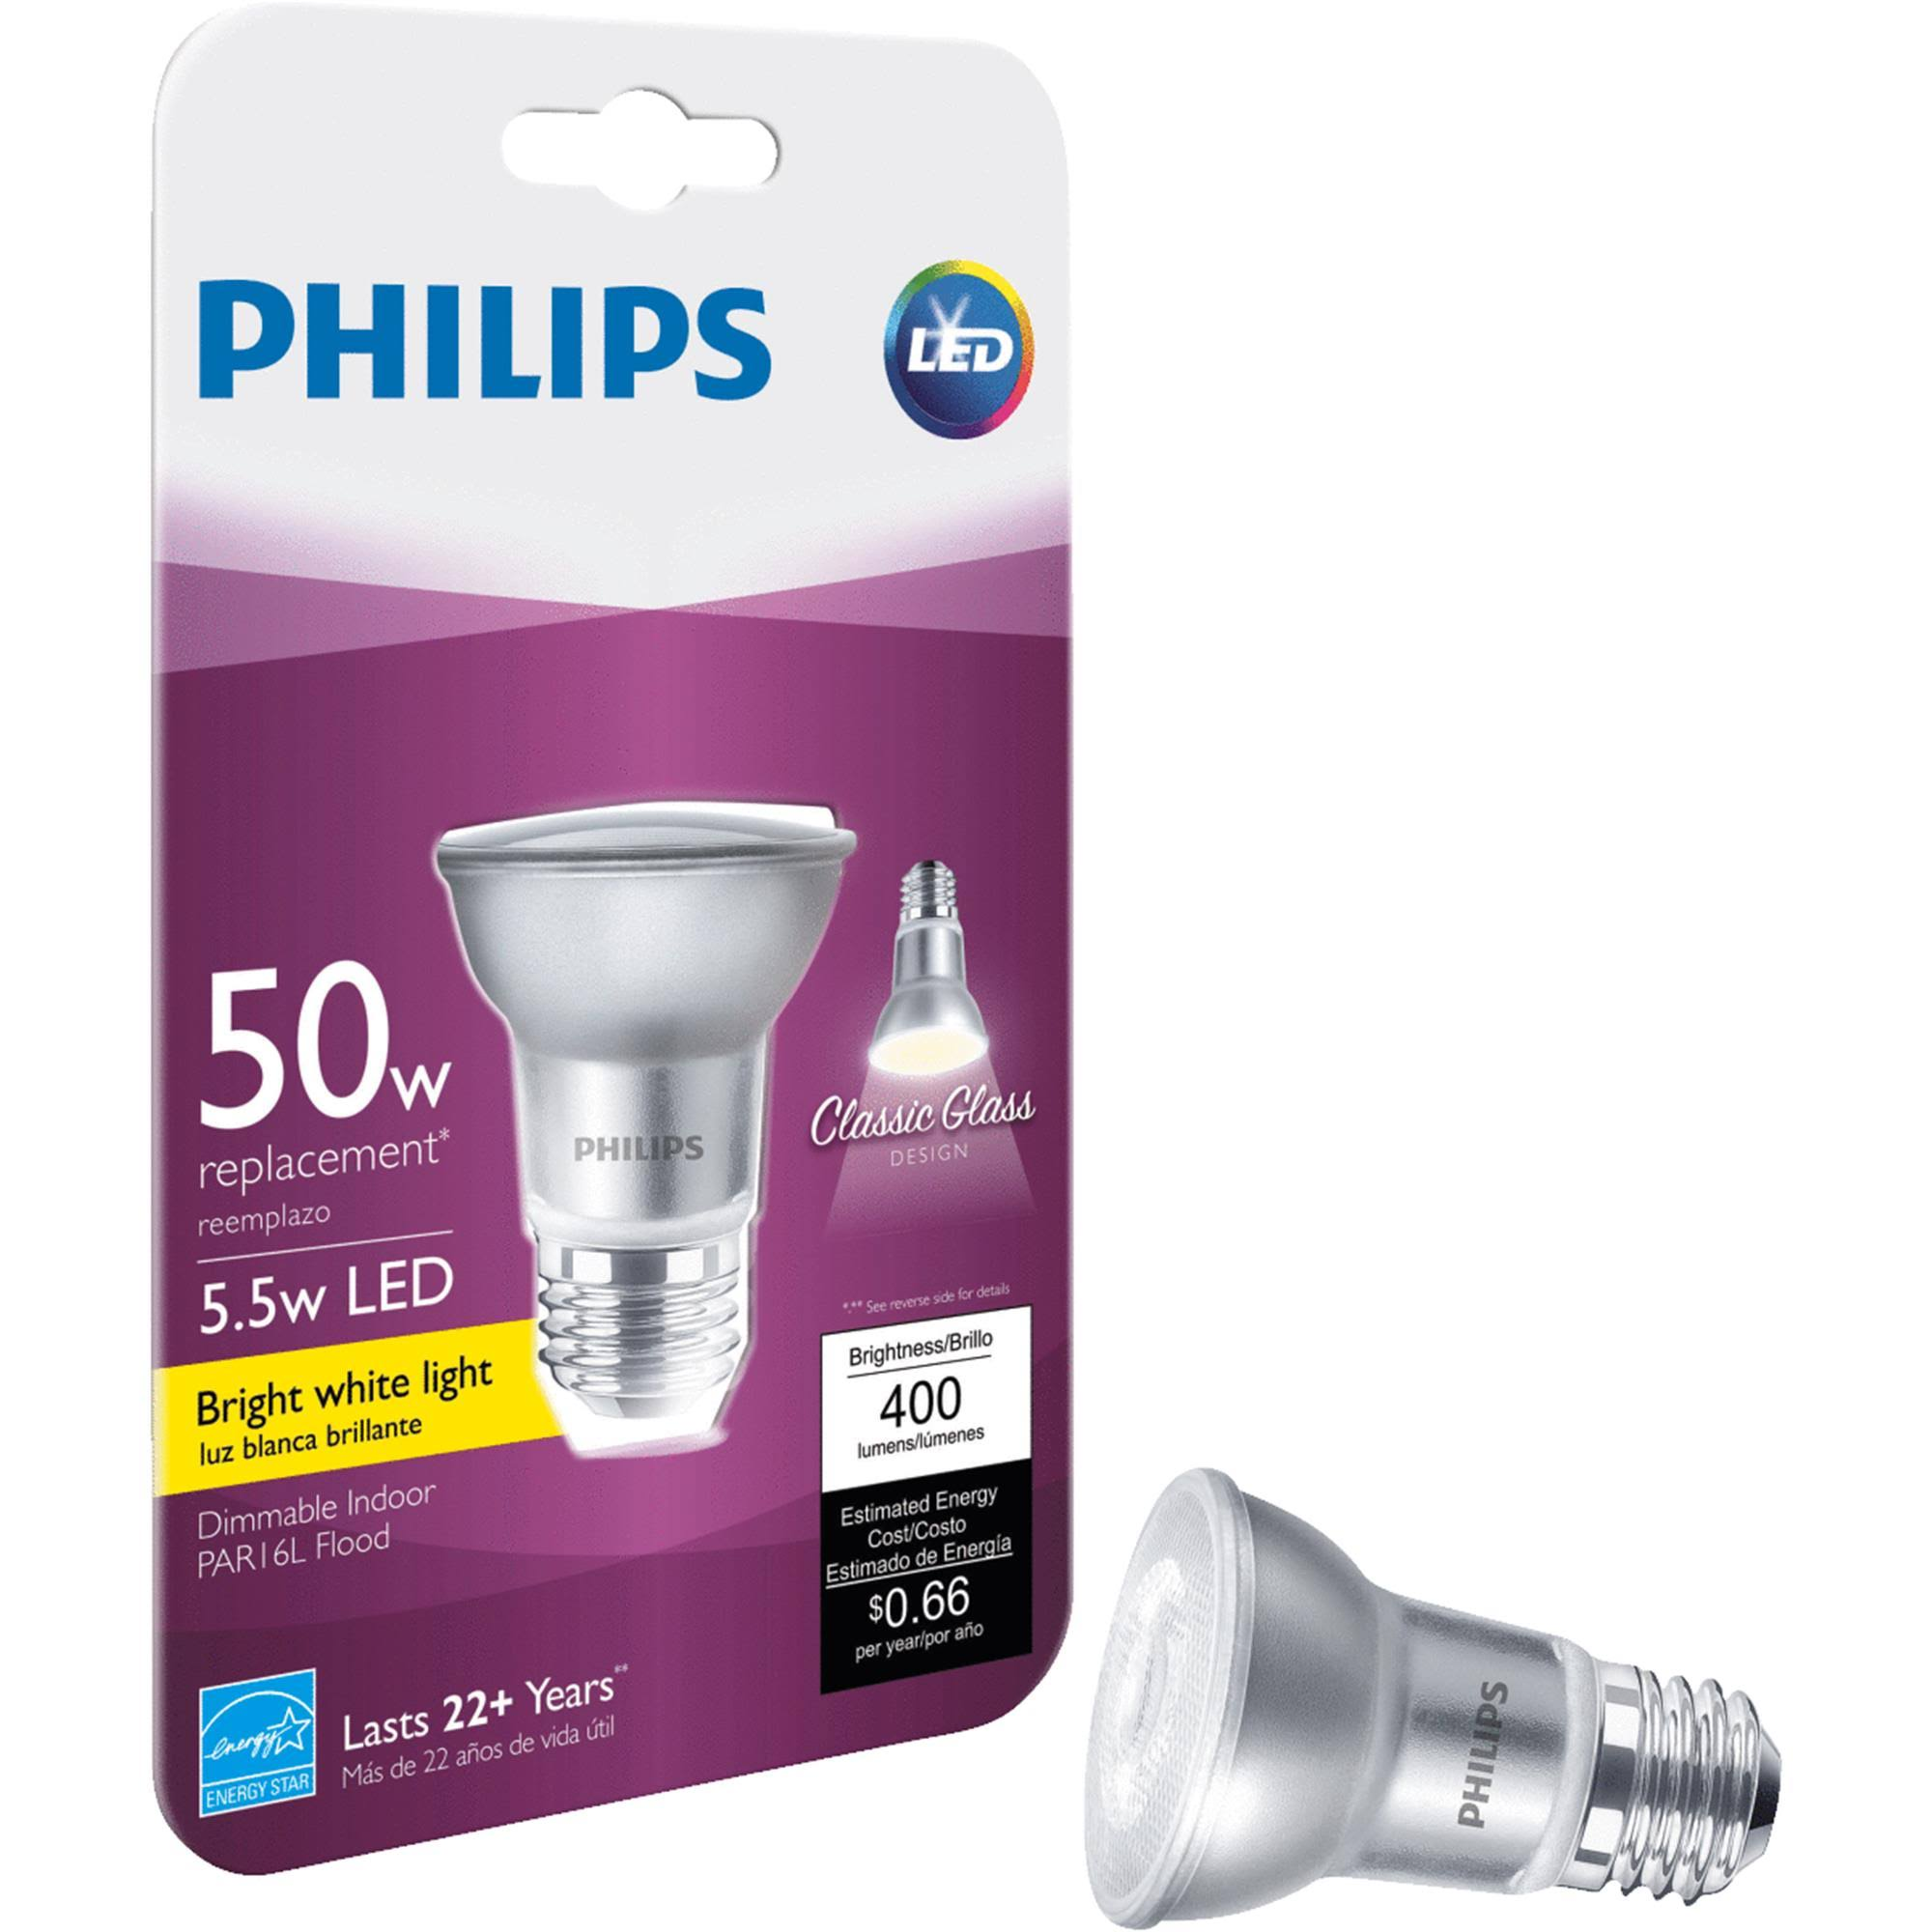 Philips PAR16L Dimmable LED Light Bulb - Glass, 50 W Equivalent